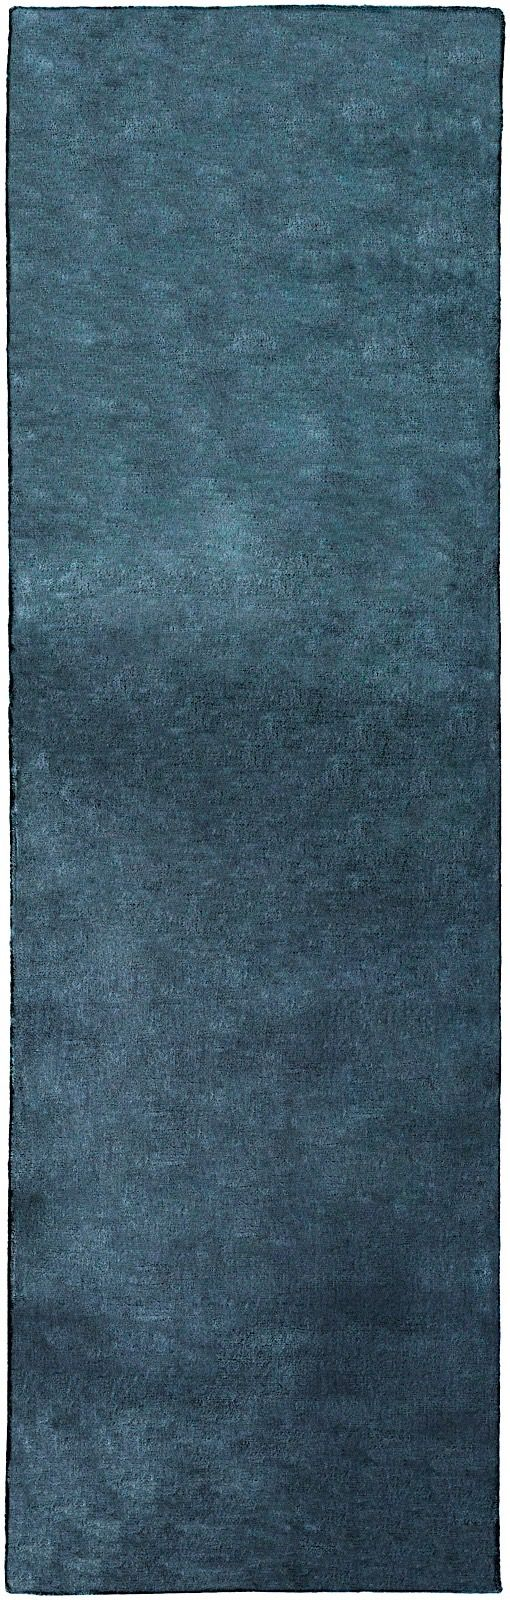 surya bellatrix contemporary area rug collection